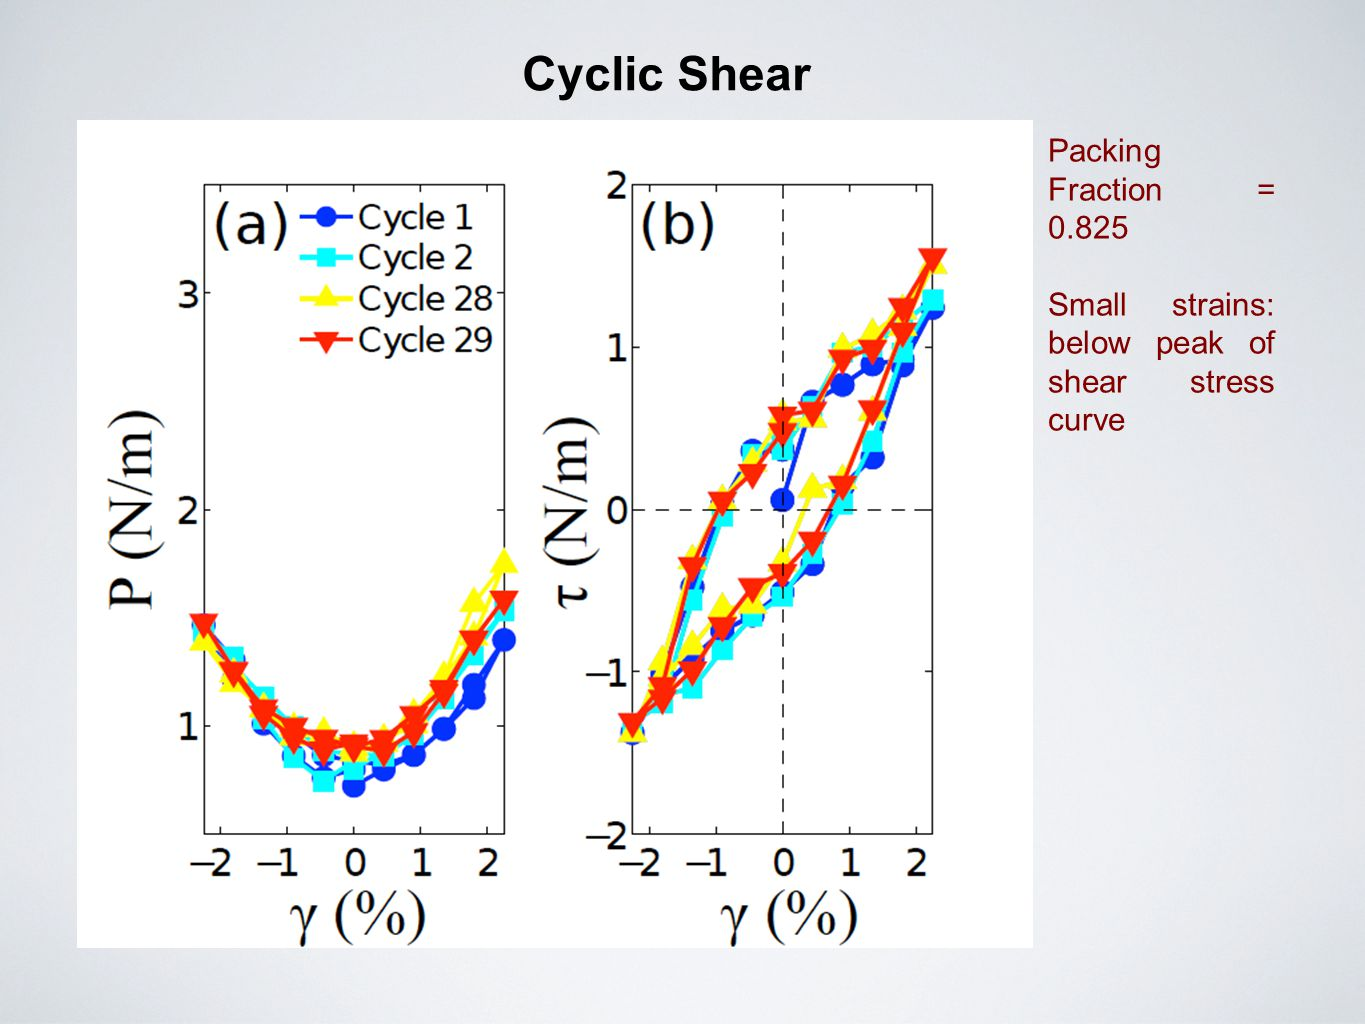 Cyclic Shear Packing Fraction = 0.825